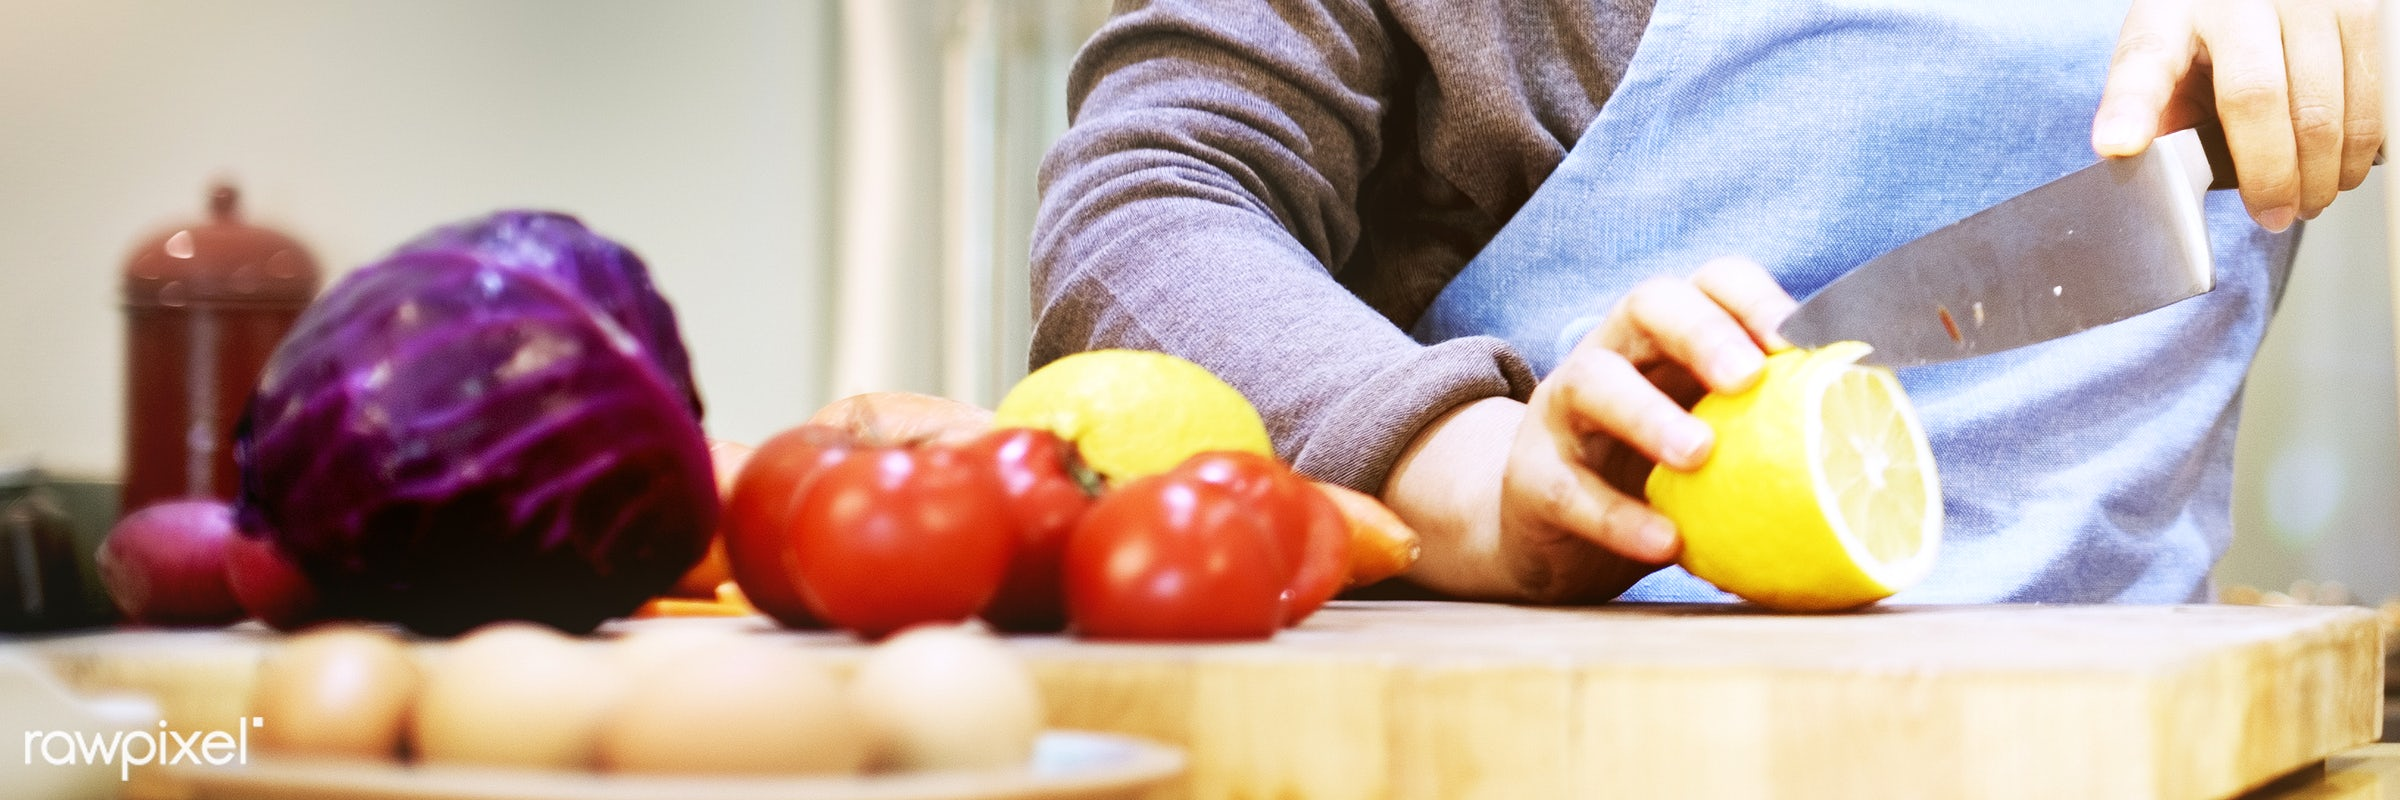 activity, adult, aged, apron, chef, cook, cookery, cooking, counter, culinary, cutting, food, fresh, fruit, health, healthy...